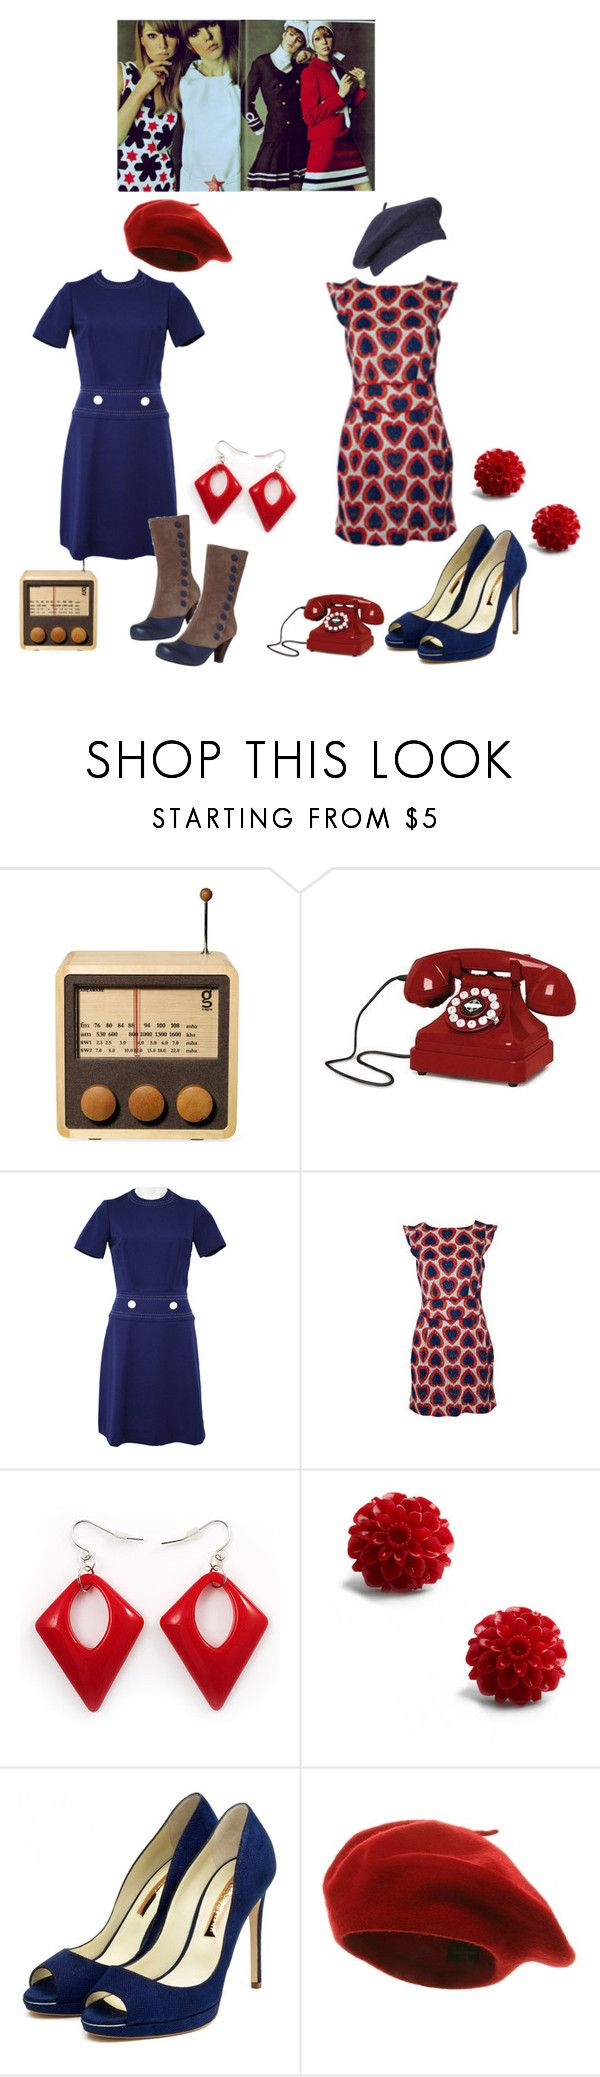 """""""Boyd Sisters"""" by peace-frog ❤ liked on Polyvore featuring Singgih Kartono, Emily and Fin, Avalaya, Gentle Fawn Clothing, Rupert Sanderson and Topshop"""